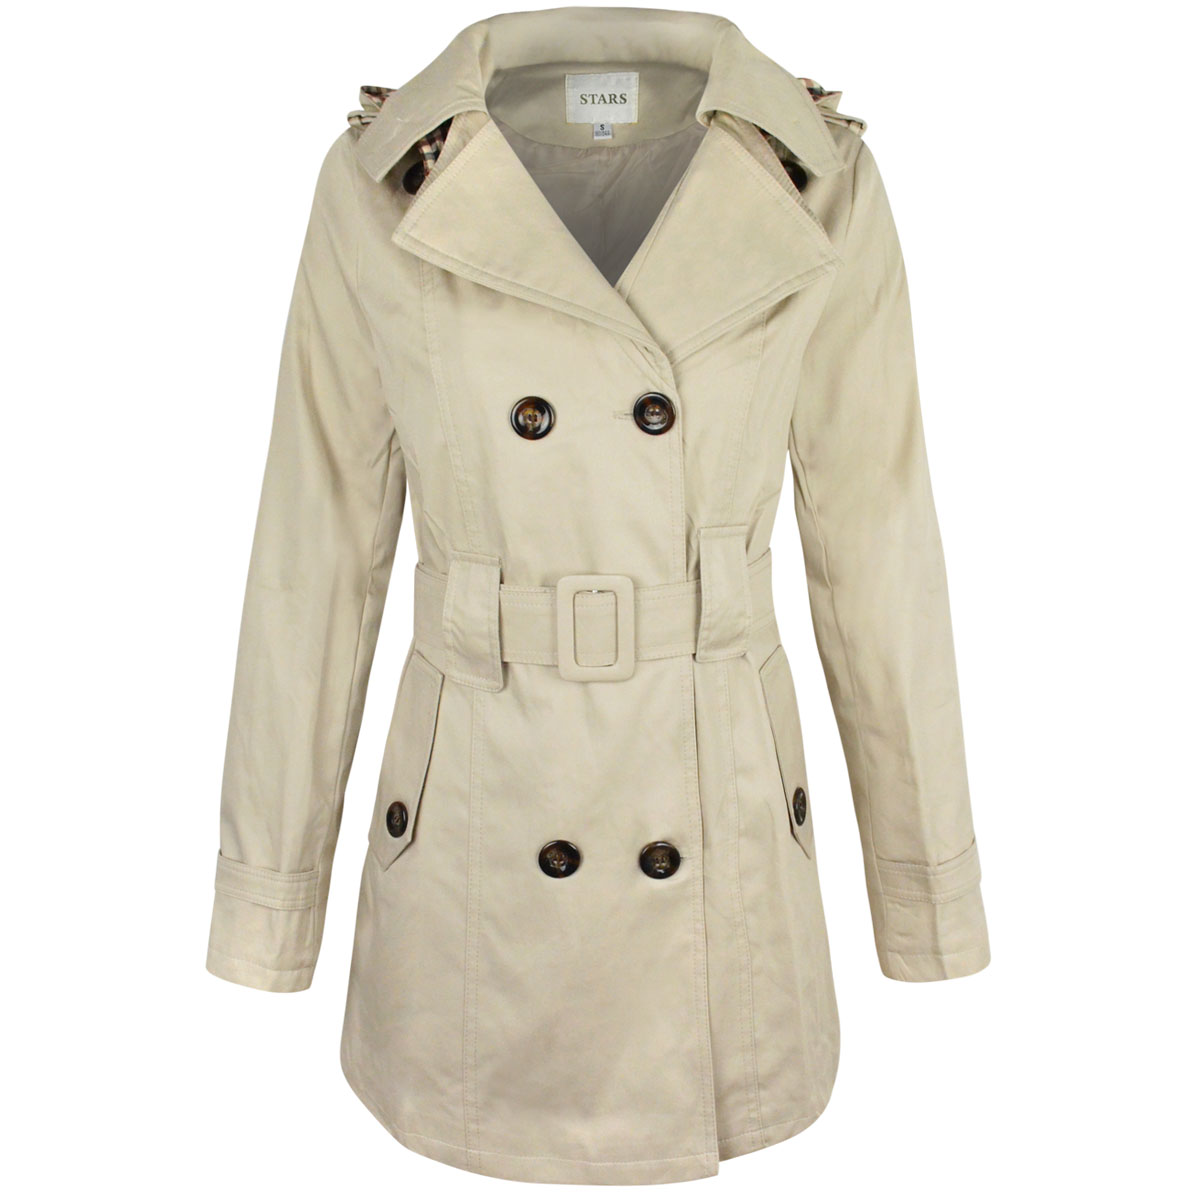 860a479de32 New Womens Mac Coat Trench Jacket Double Breasted Belted Summer ...